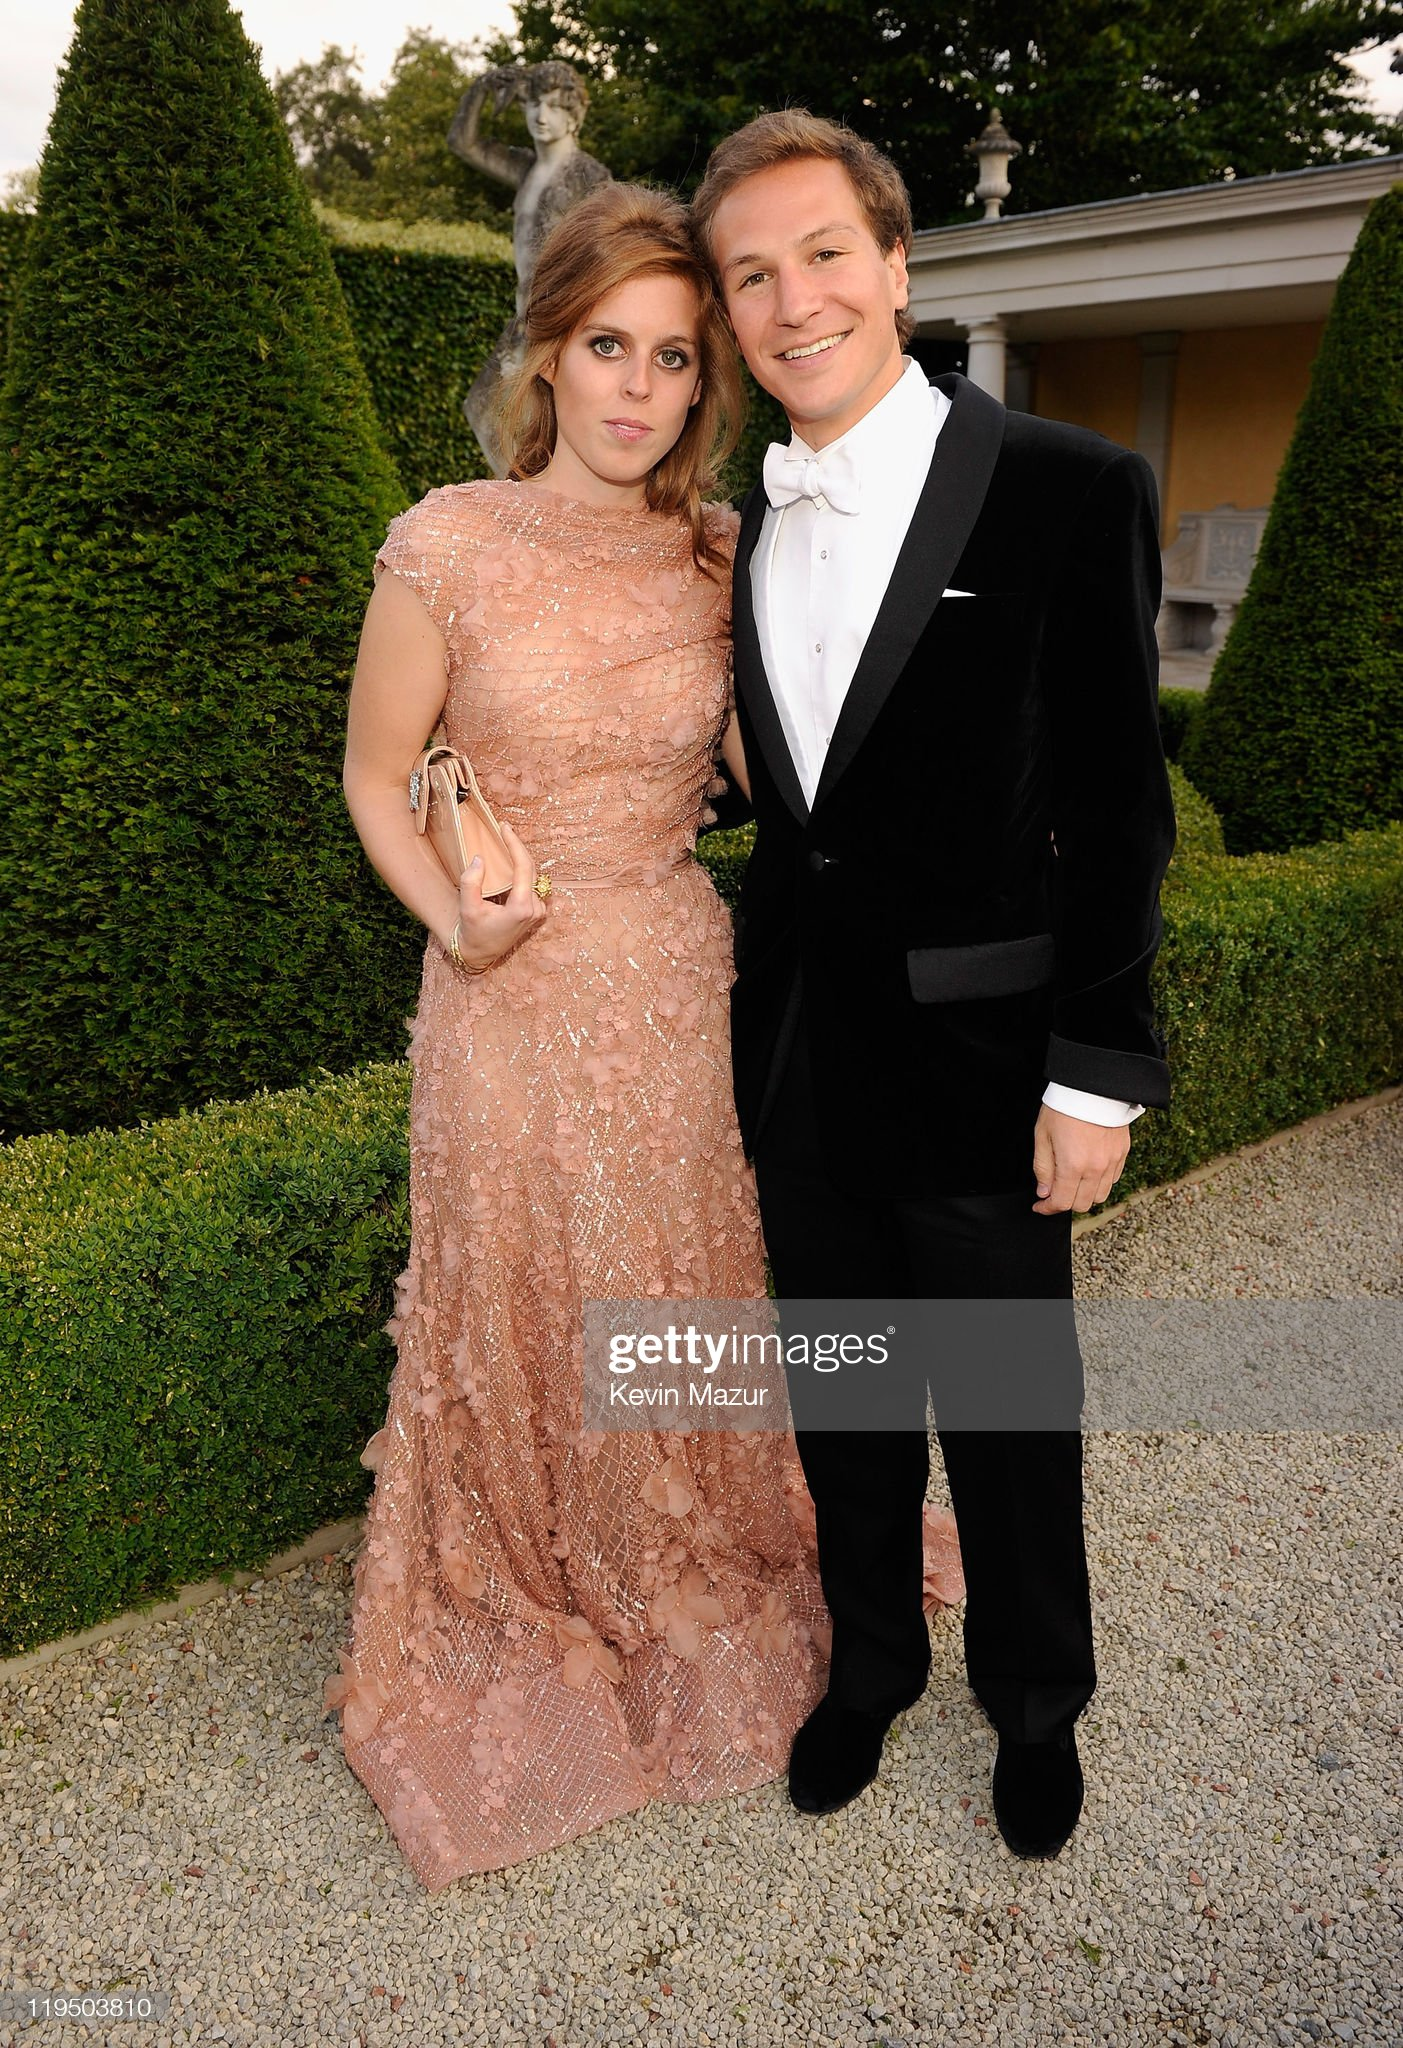 The 13th Annual White Tie & Tiara Ball - Arrivals : News Photo